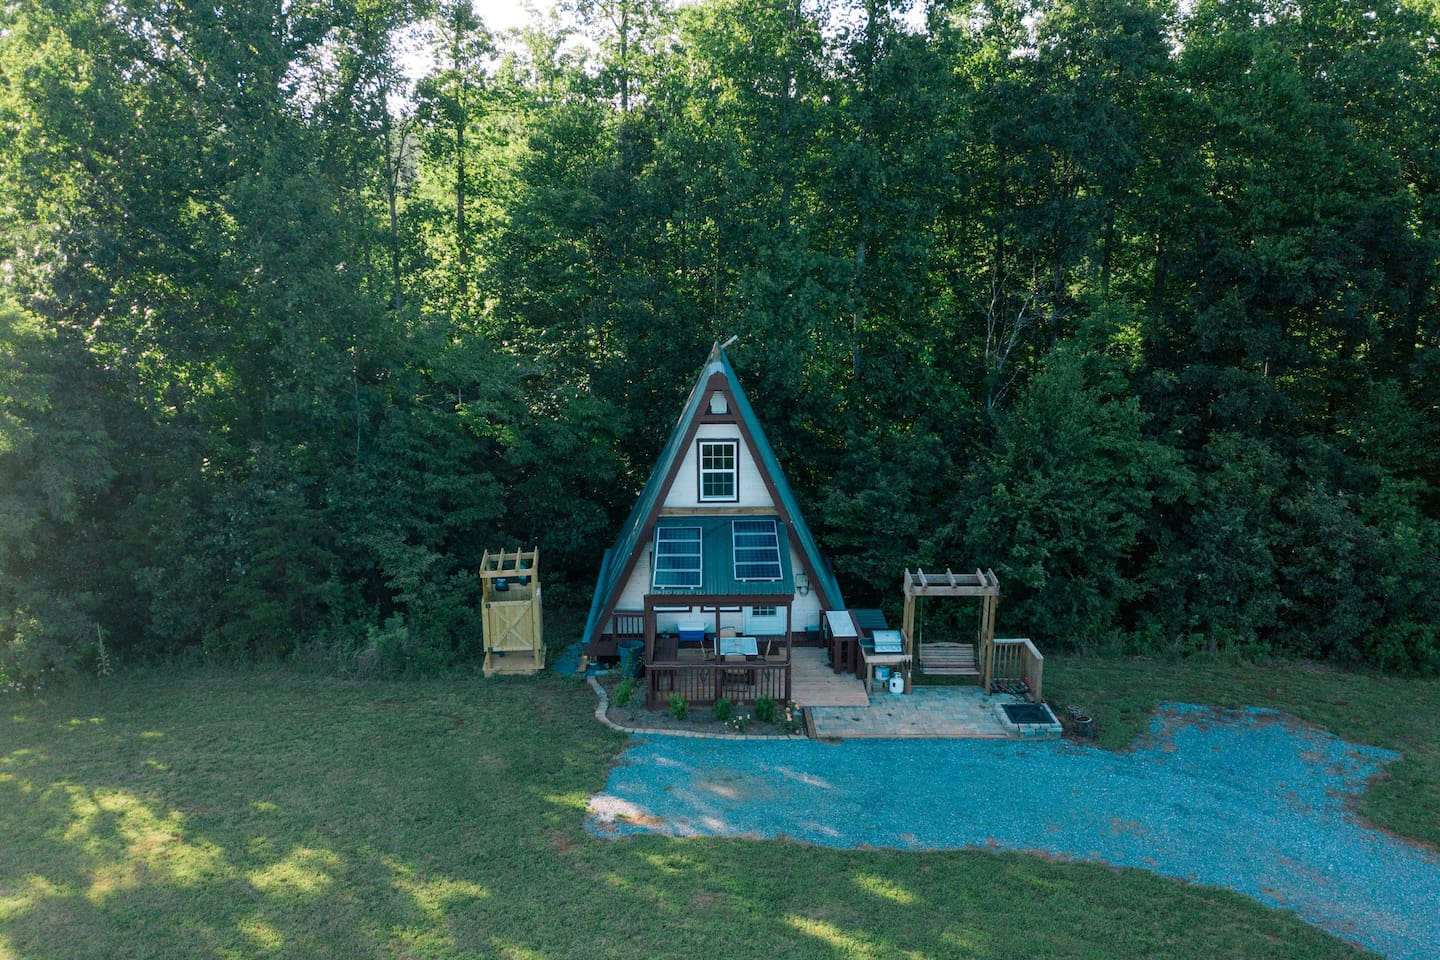 Our wonderful little A-Frame, equipped with solar power, an outdoor shower, fire pit, grill, and camp stove for cooking. Wooden swing to enjoy the quiet mornings on and evening sounds of nature.Table and chairs for outdoor seating and a wooden bench.